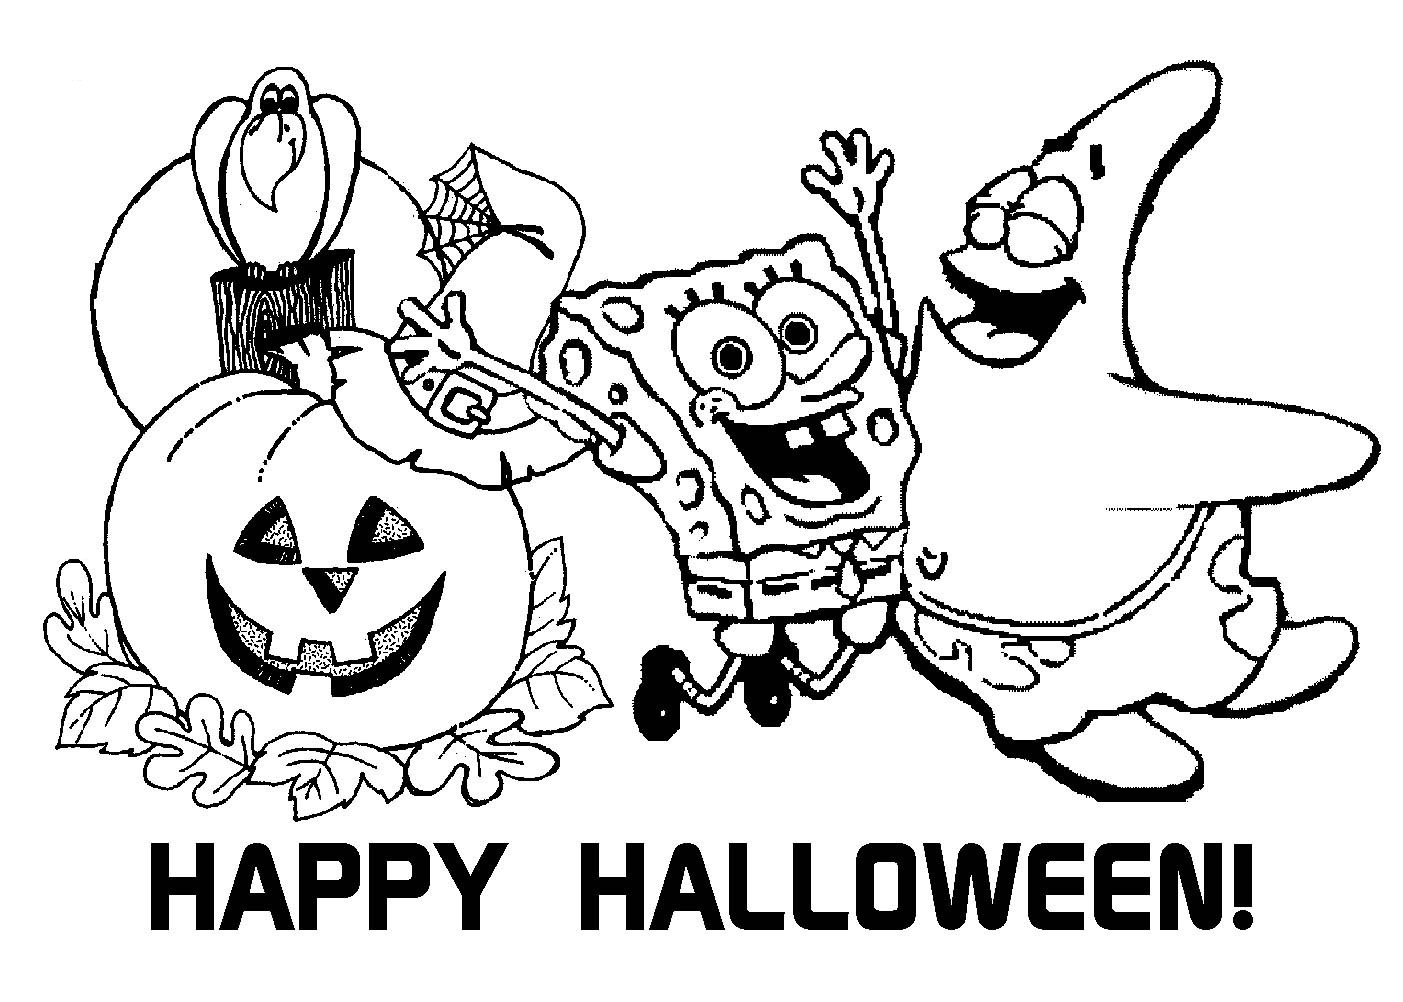 Halloween Coloring Pages for Children